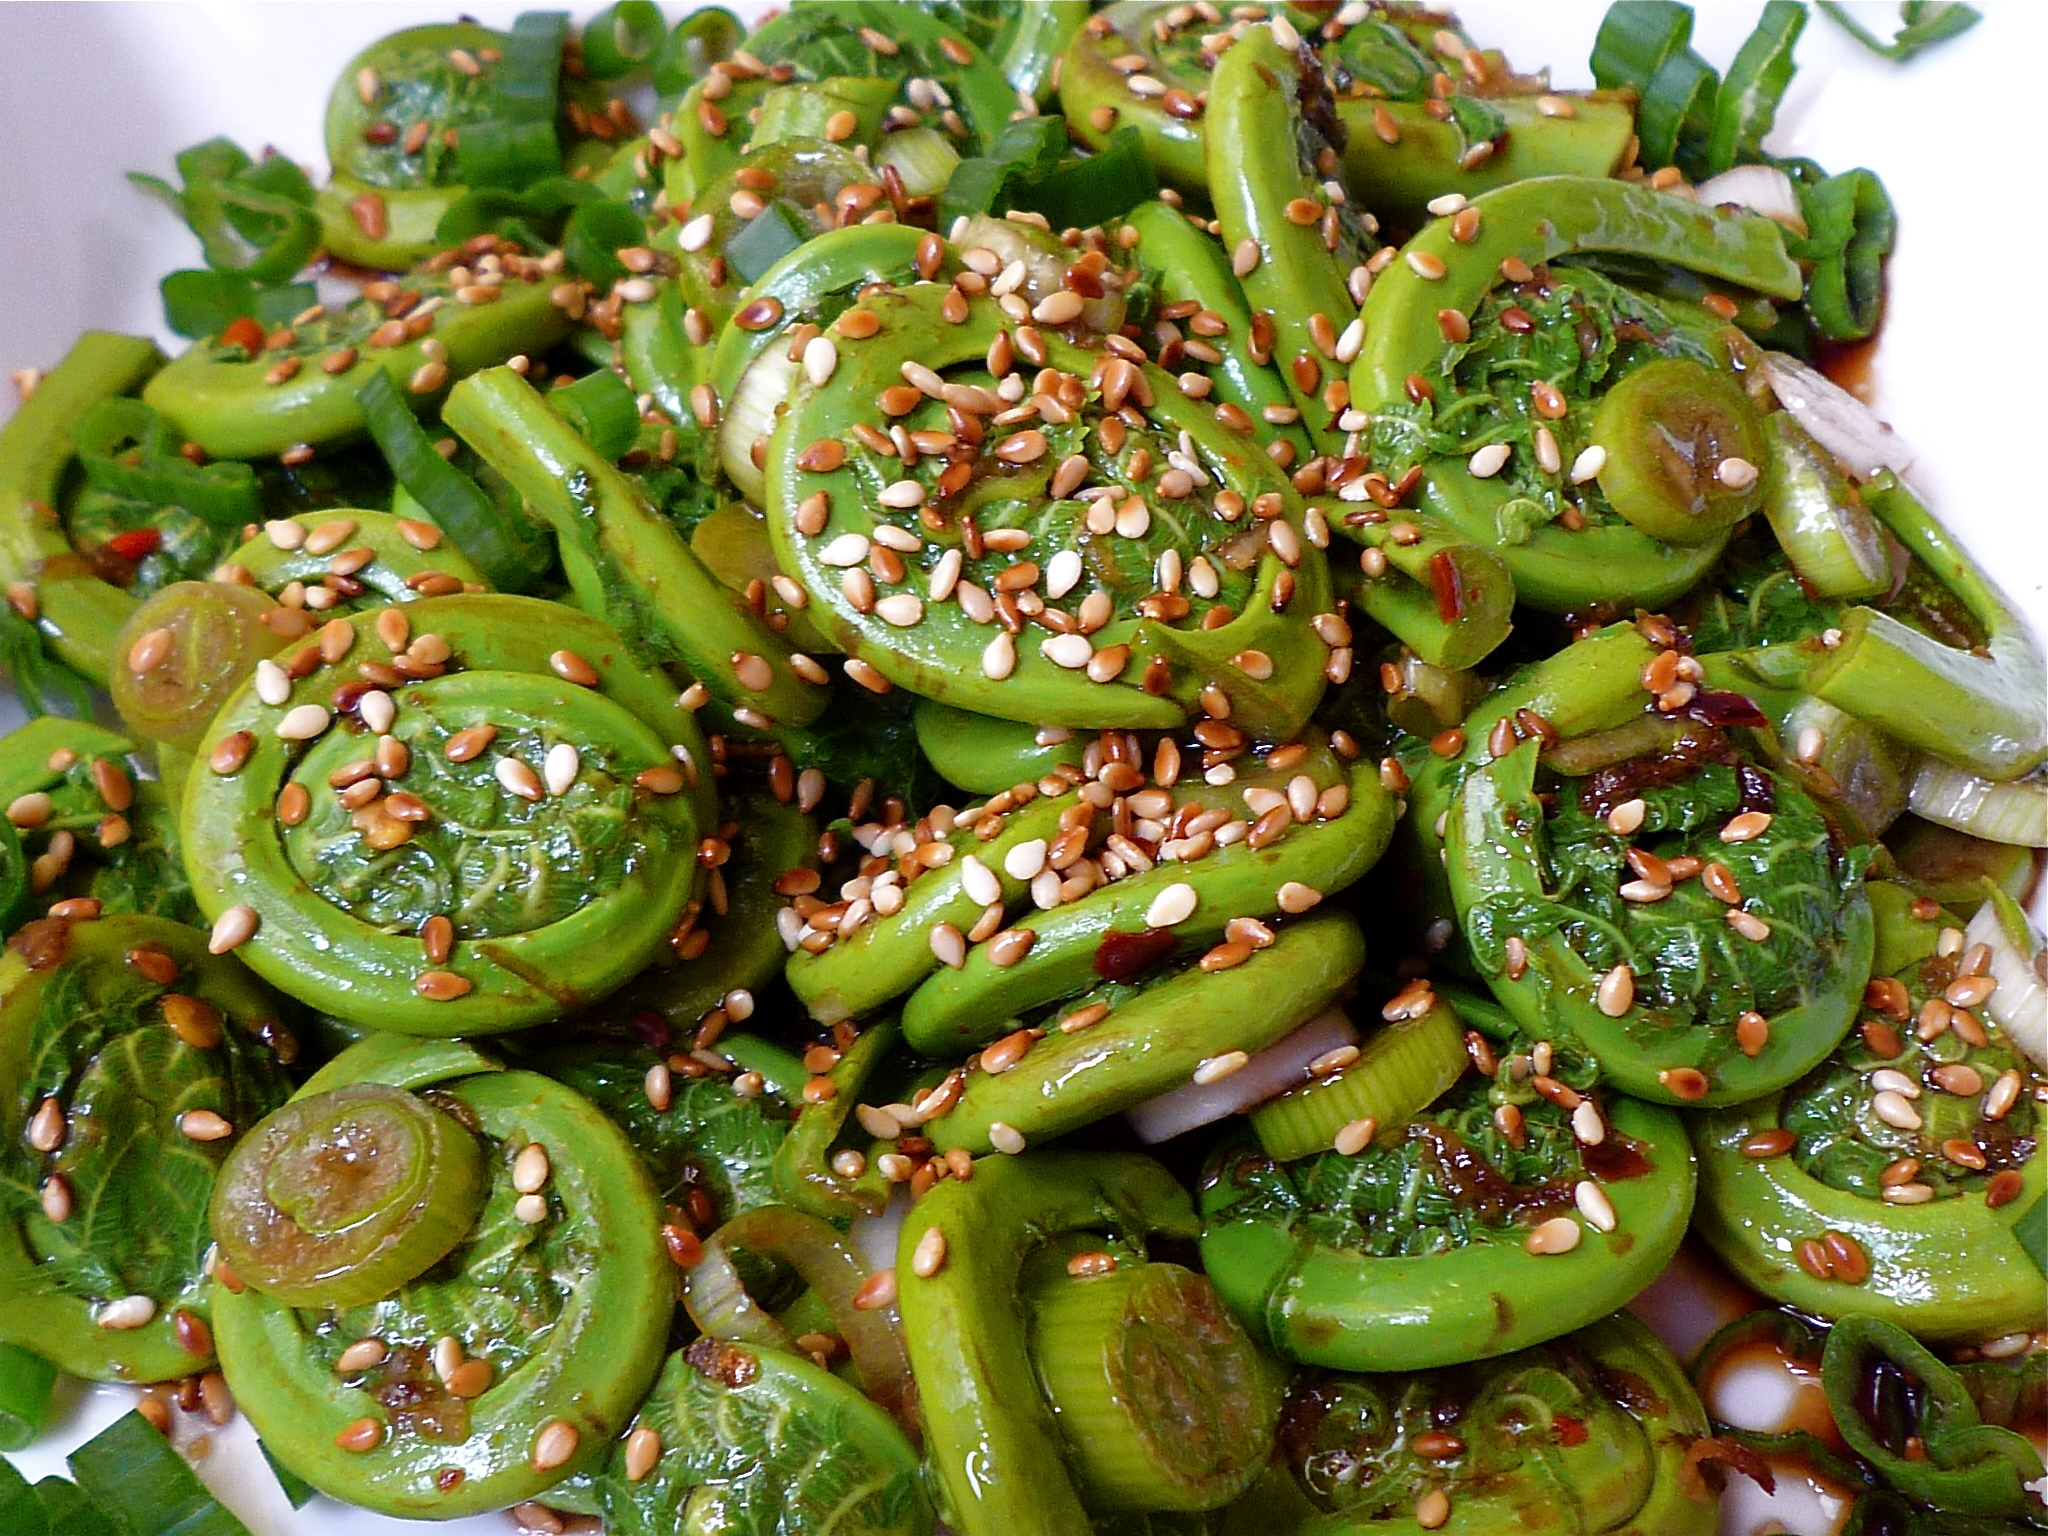 Fiddlehead Salad with Sesame Vinaigrette